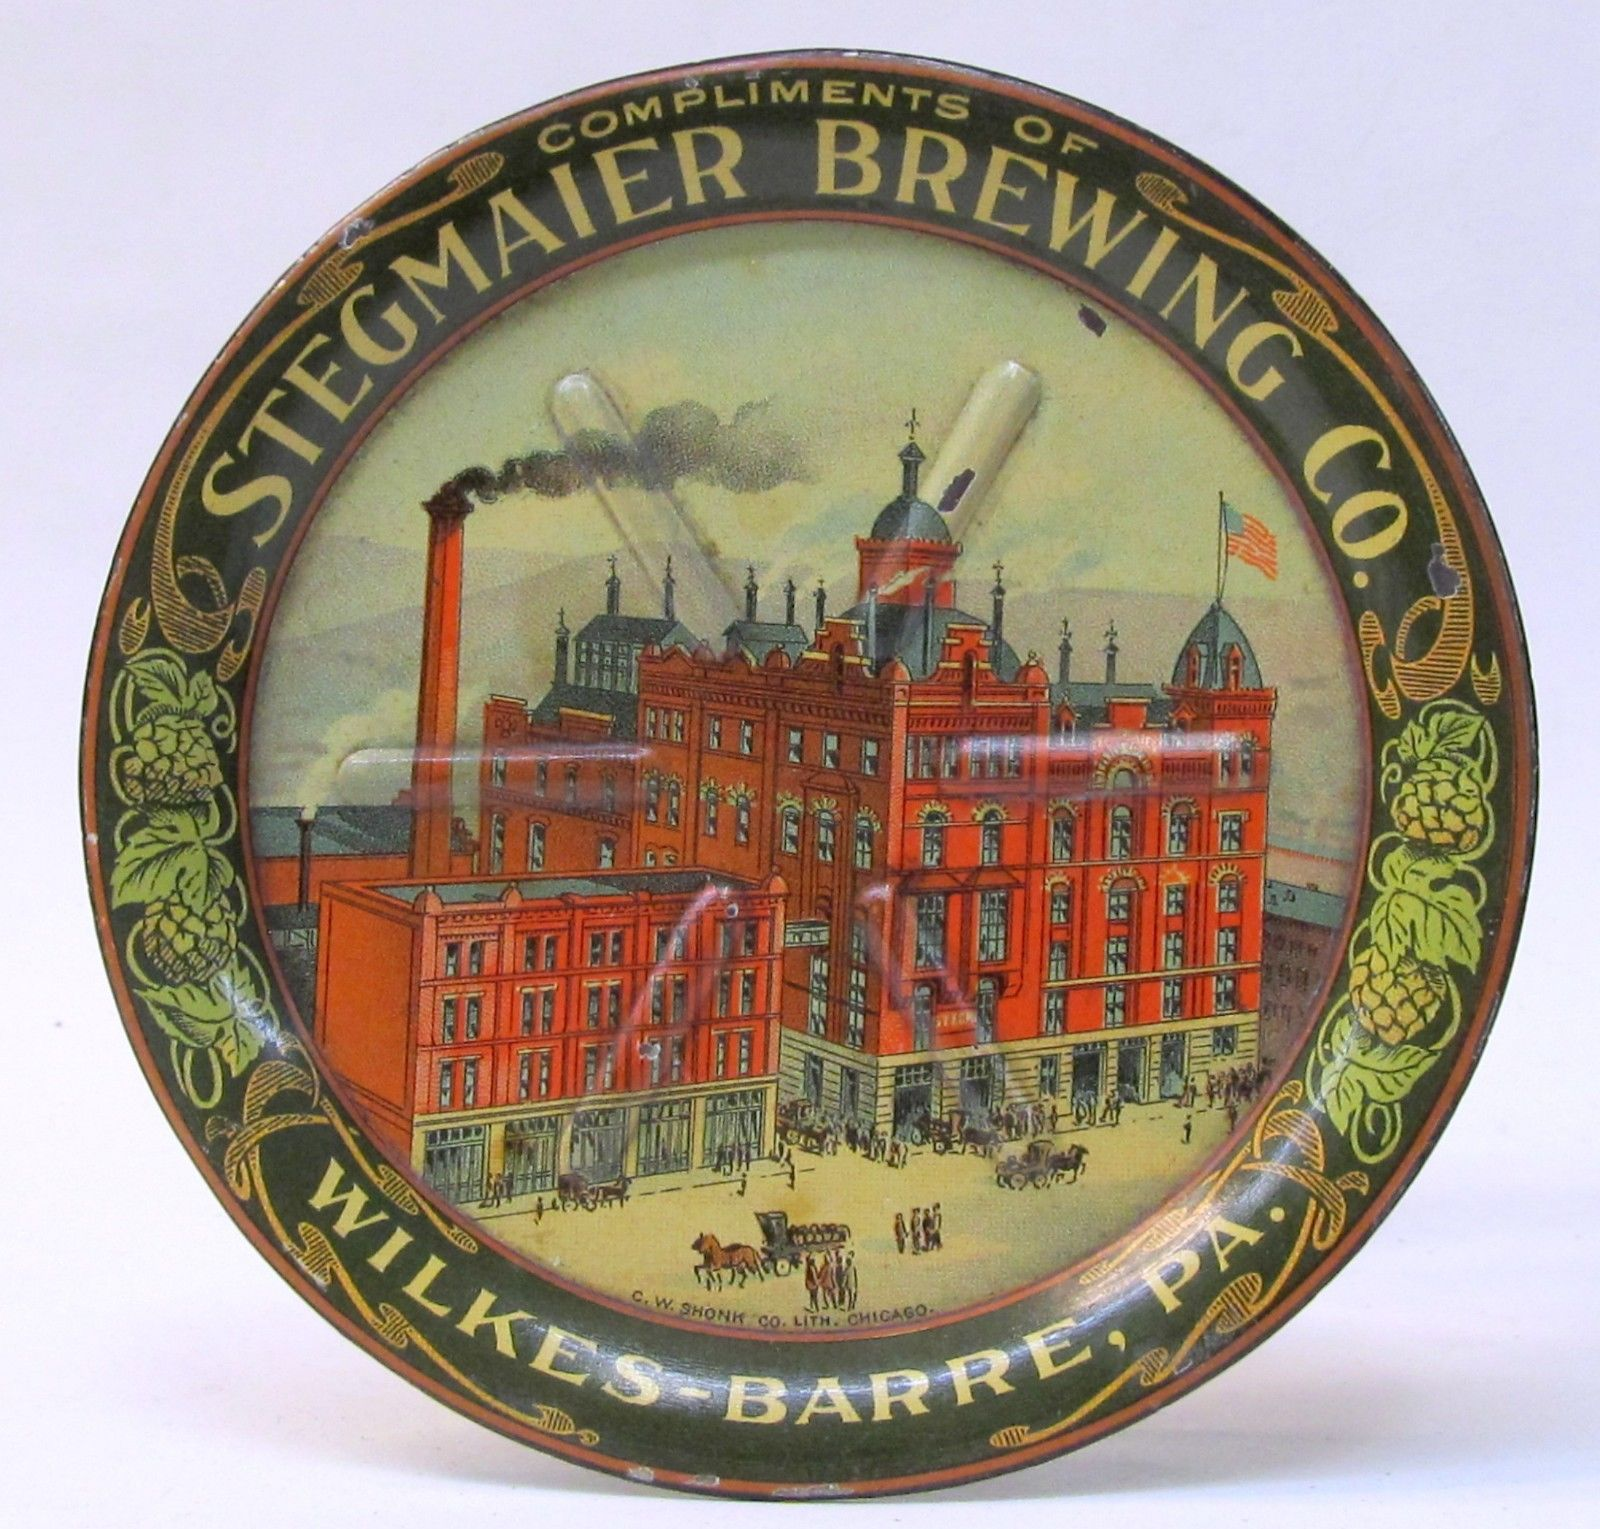 Stegmaier Brewing Co. Wilkes-Barre, PA. Tip Tray. Circa 1910